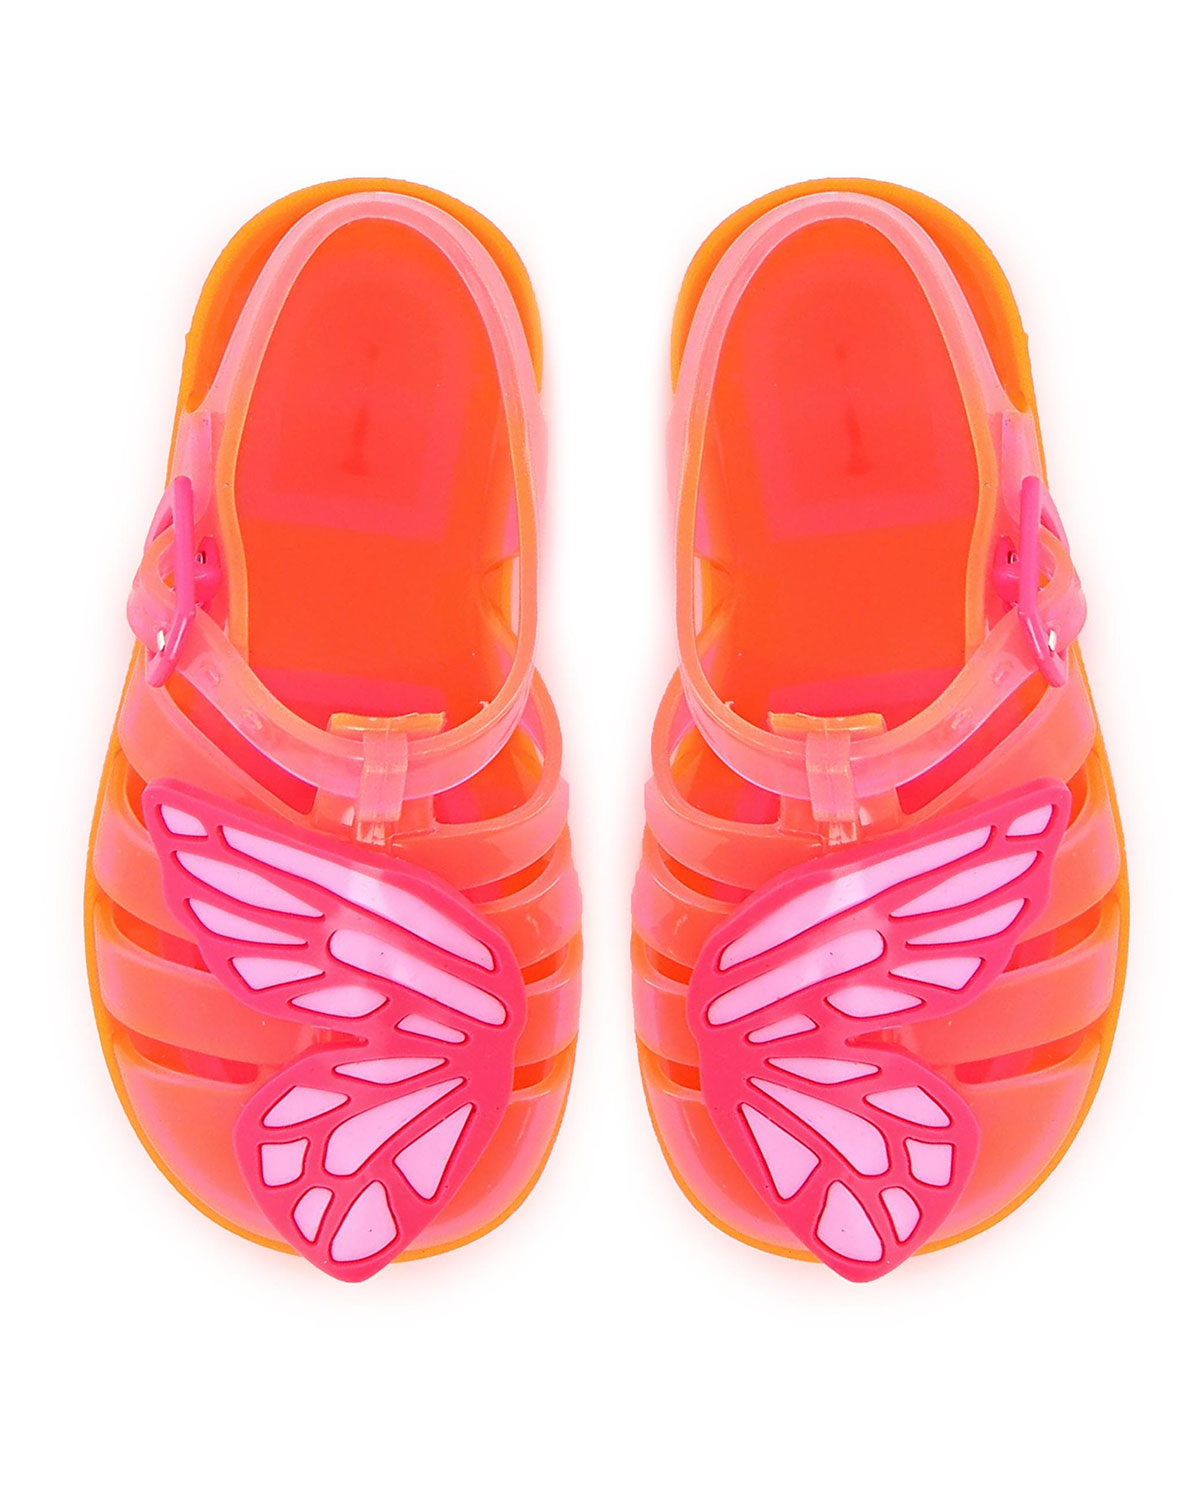 Sophia Webster BUTTERFLY JELLY CAGED SANDALS, BABY/TODDLERS